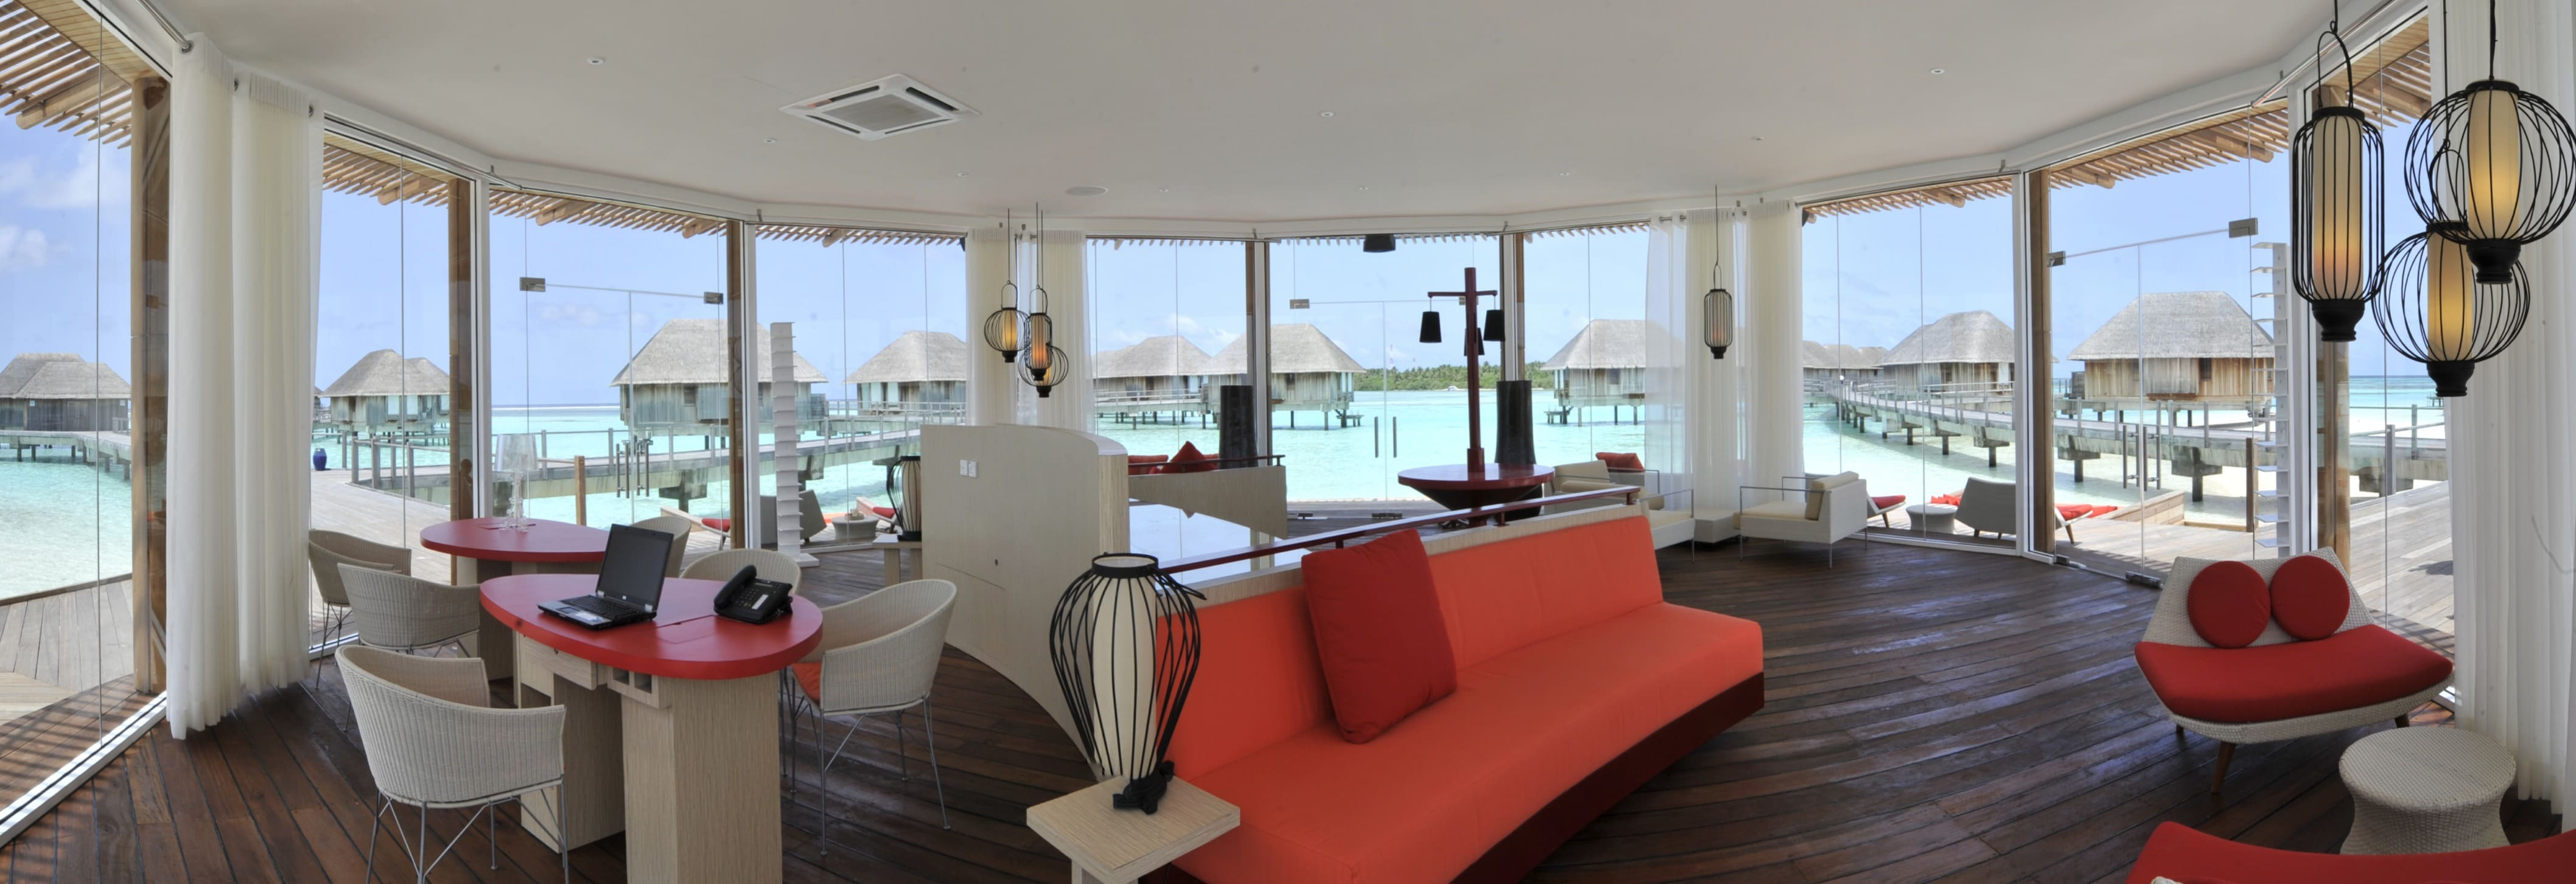 Infinite Possibilities In Maldives With Club Med Kani All